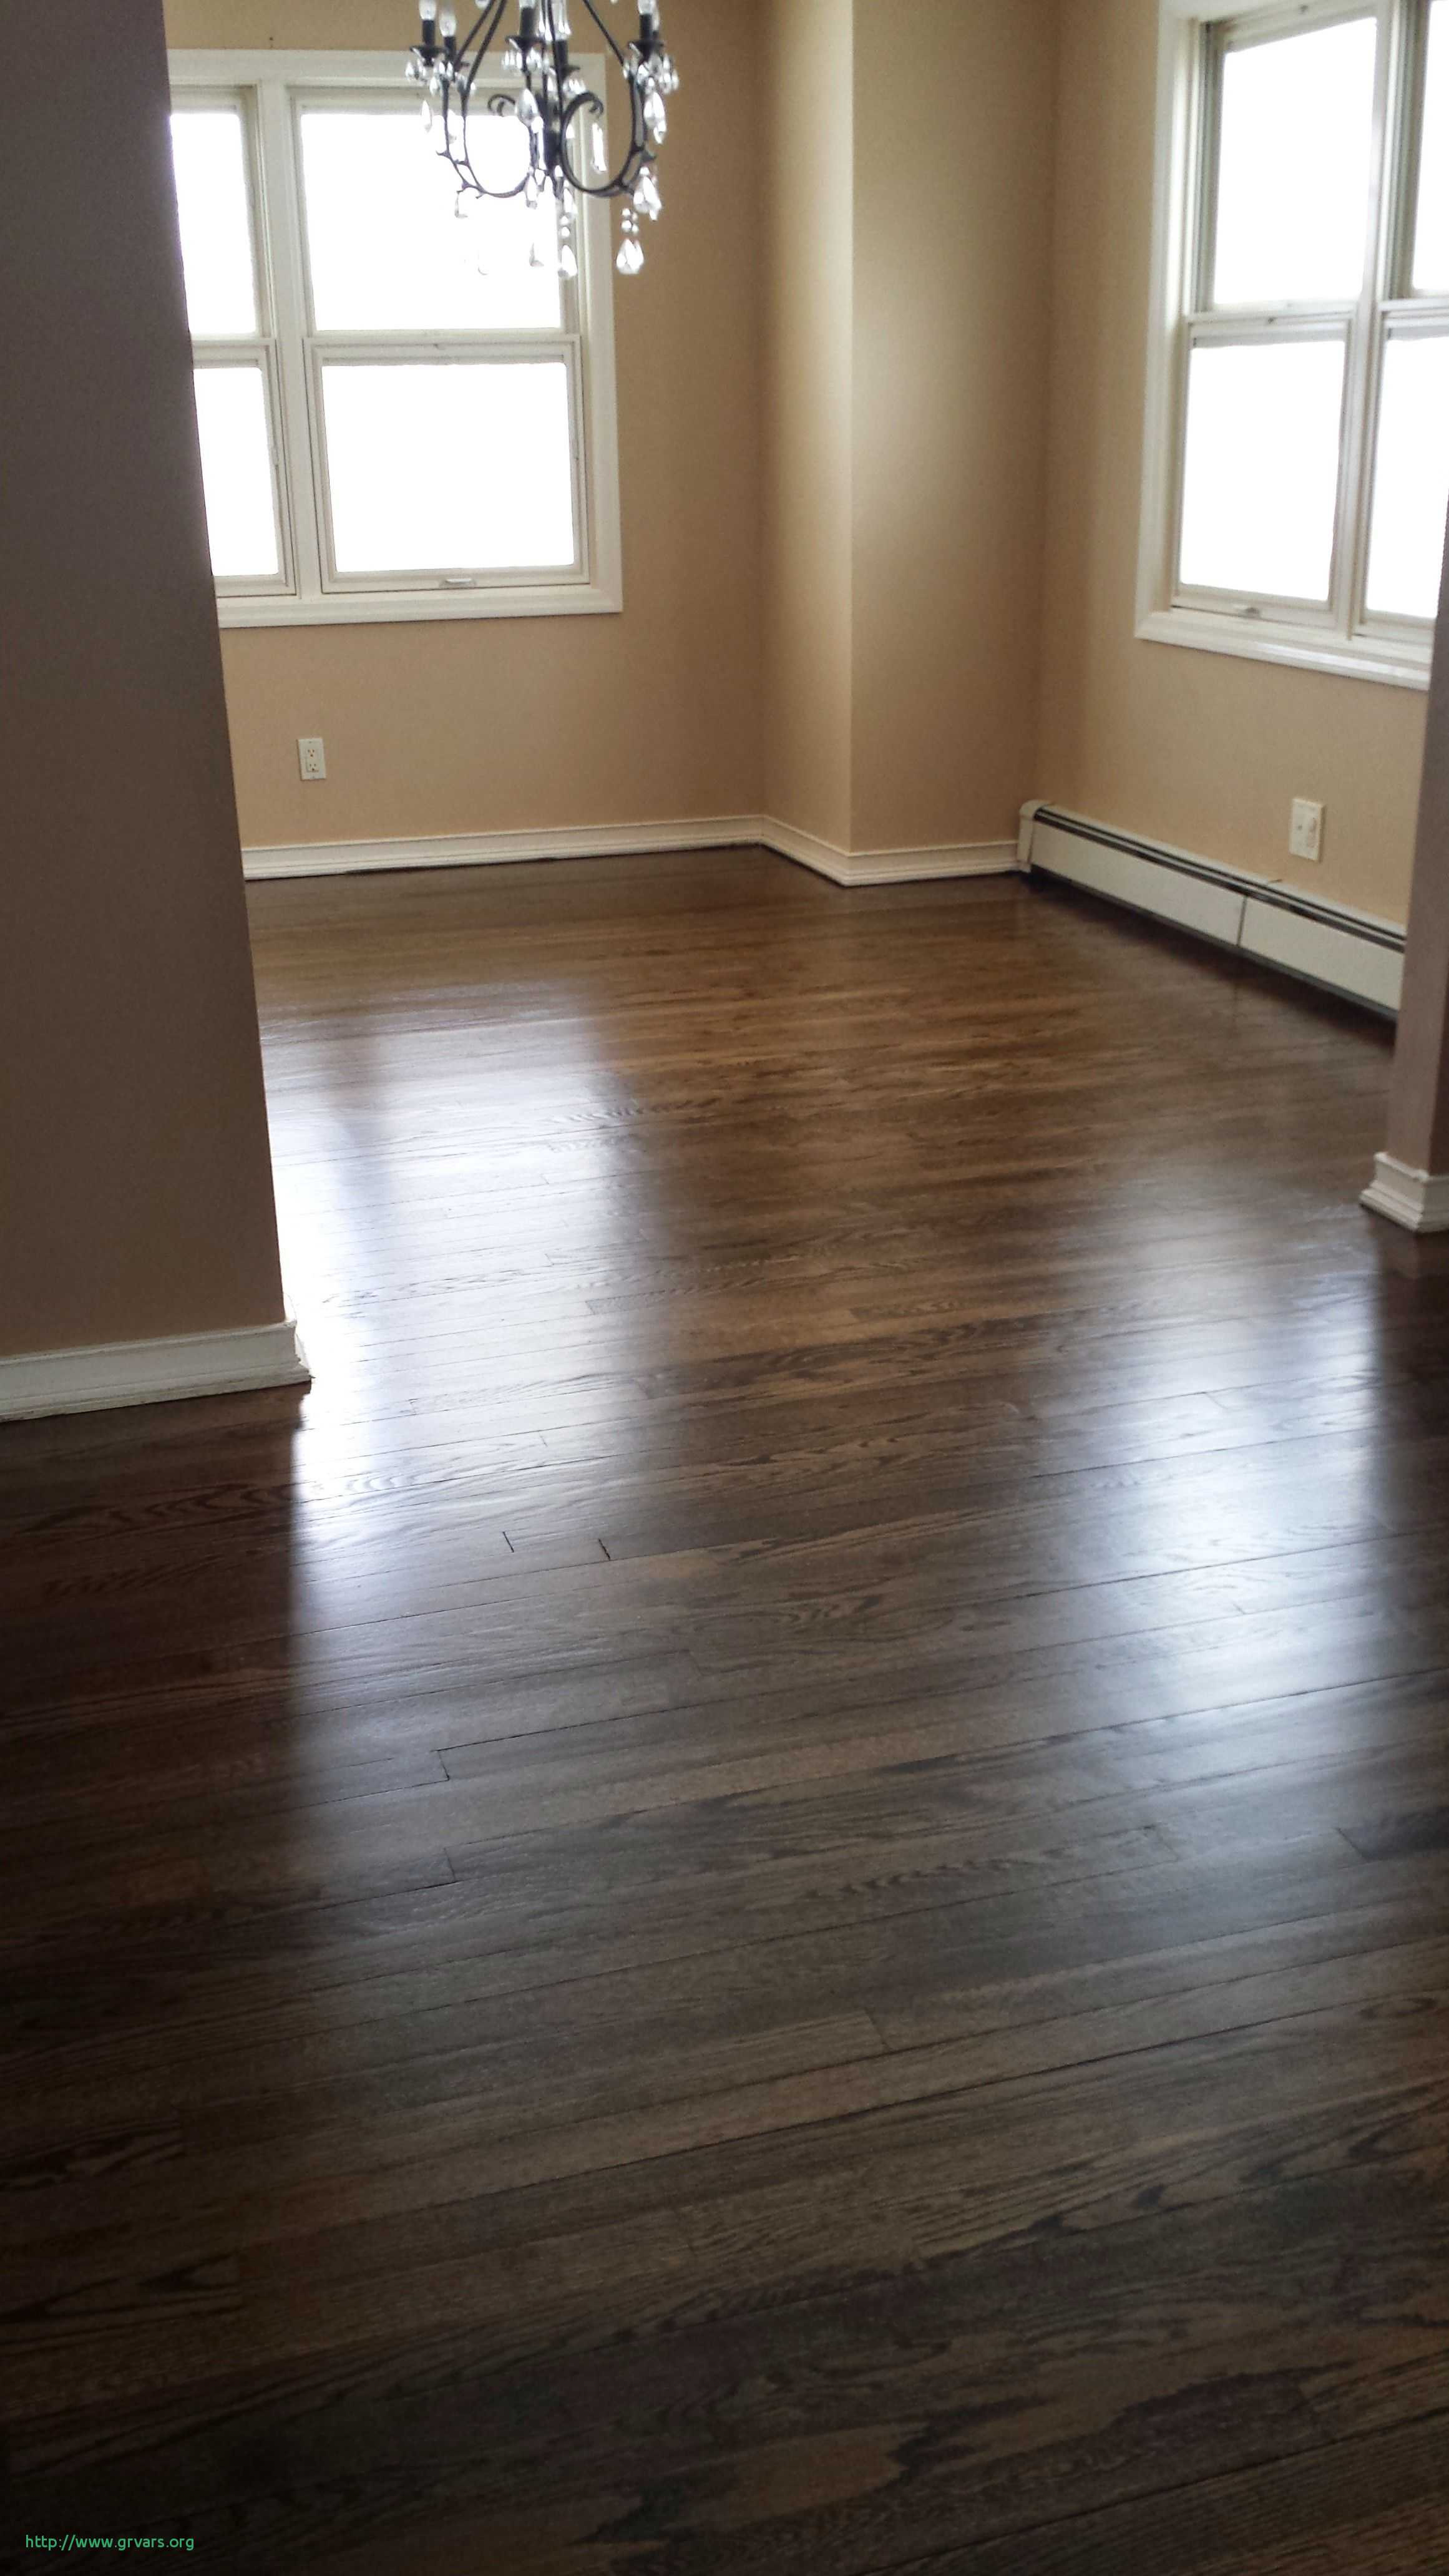 filling gaps in prefinished hardwood floors of inspirational fix refinishing hardwood floors without sanding home throughout 22 impressionnant dustless floor buffer inspirational fix refinishing hardwood floors without sanding